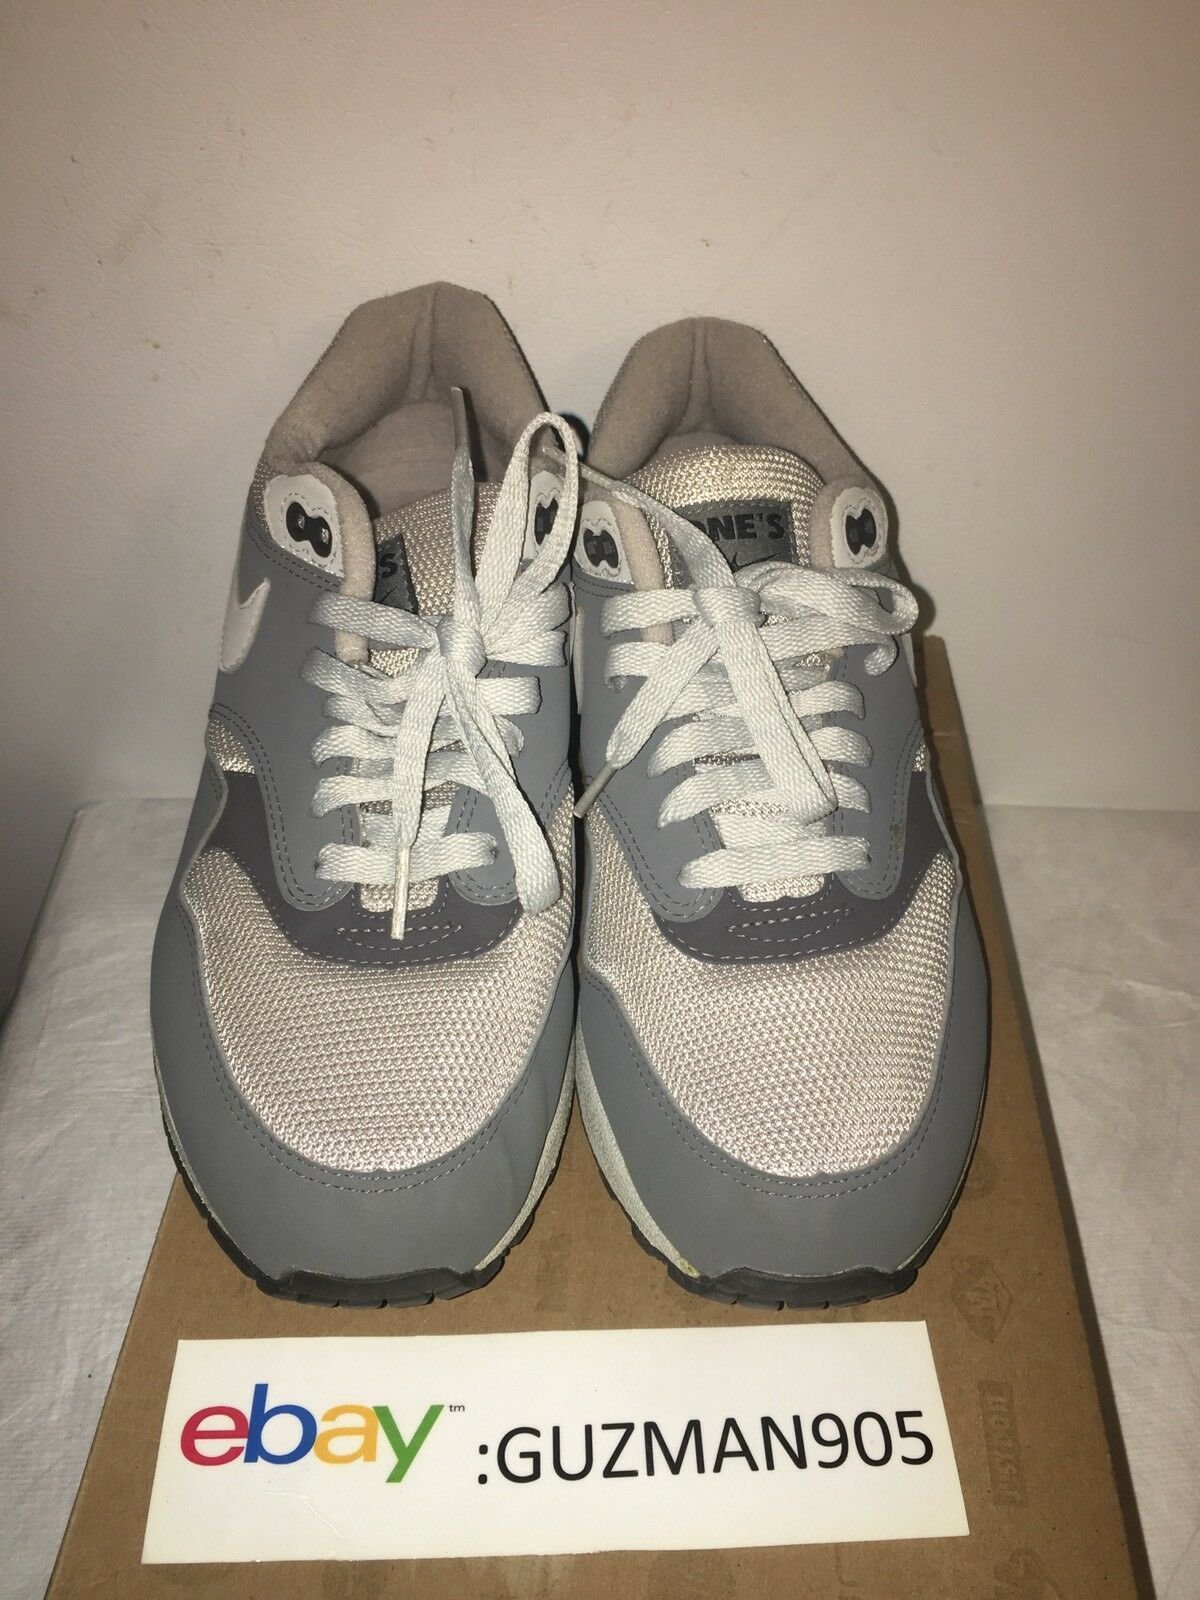 2018 Nike Air Max 1 'Book of Ones' Grey Ones Comfortable Wild casual shoes